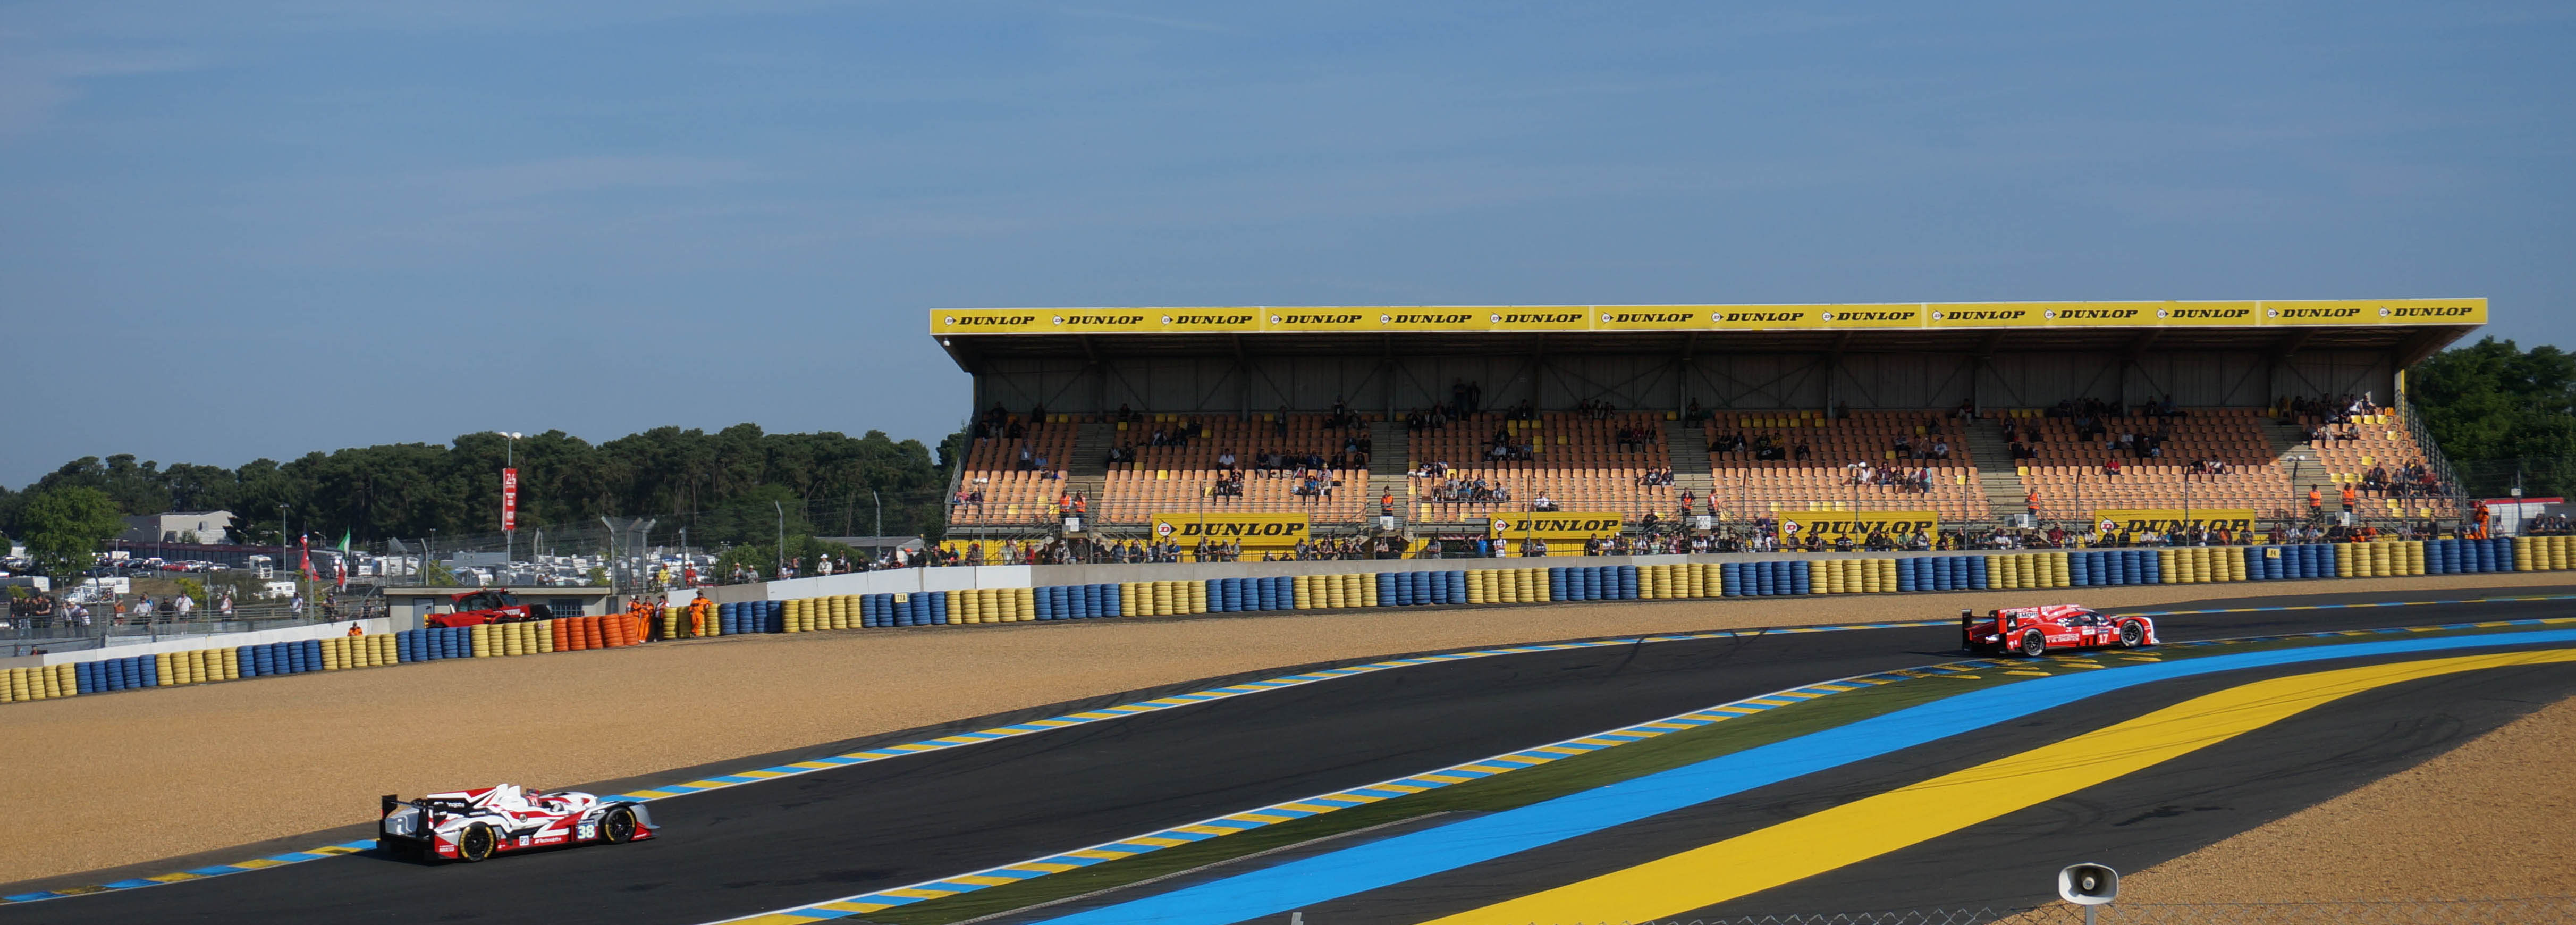 24h du mans auto 2015 les safety car audi pour les 24h du mans 2015 24 heures du mans photos 24. Black Bedroom Furniture Sets. Home Design Ideas